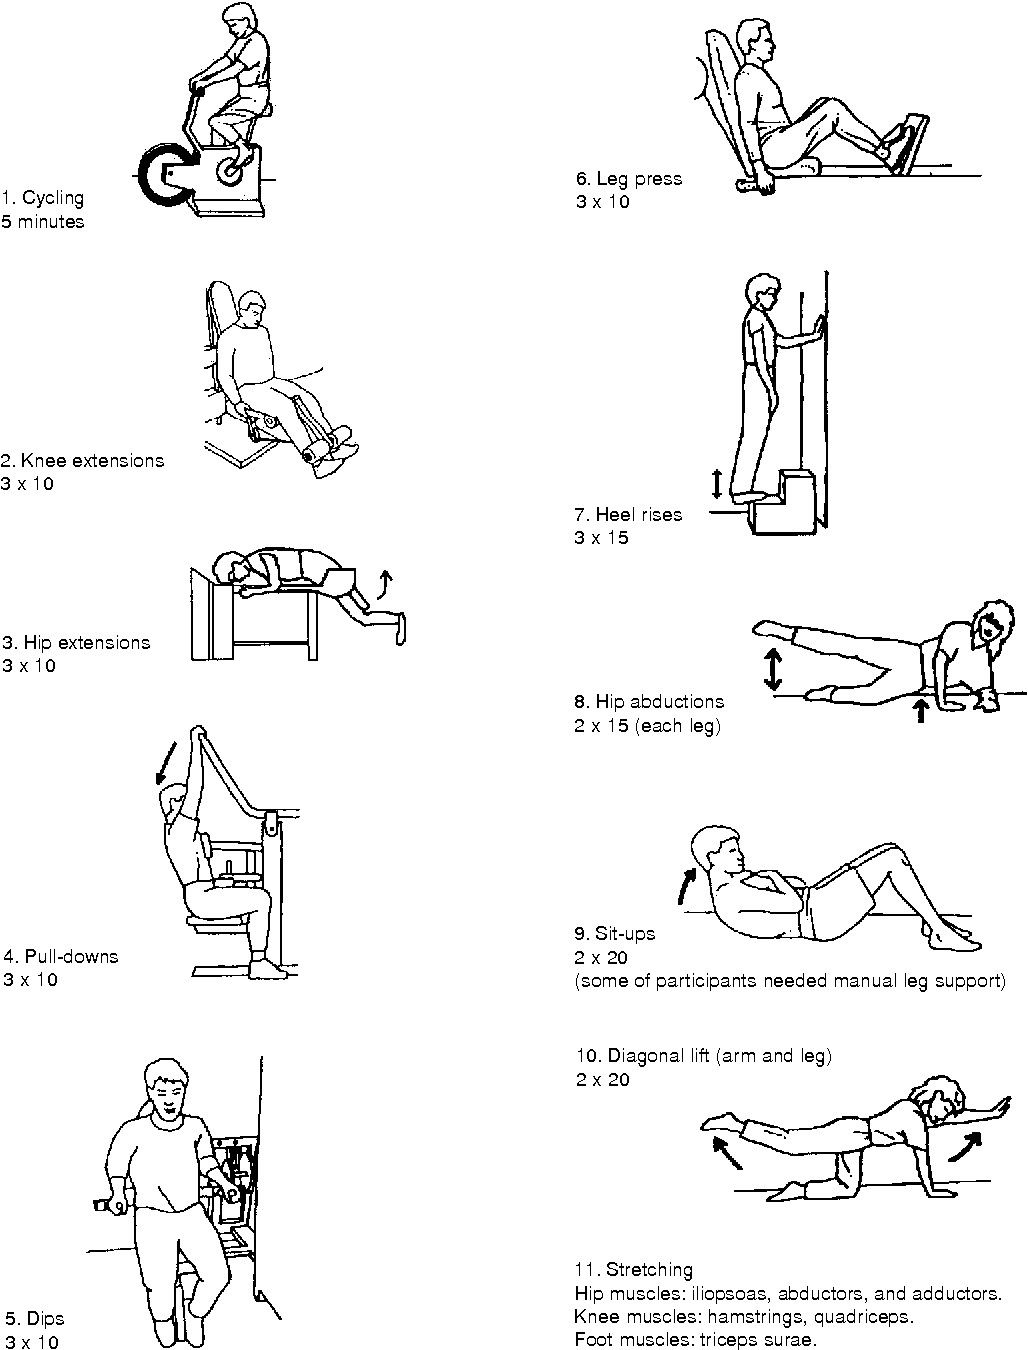 Pin By Courtney Wilder On Pediatric Pt Home Exercises